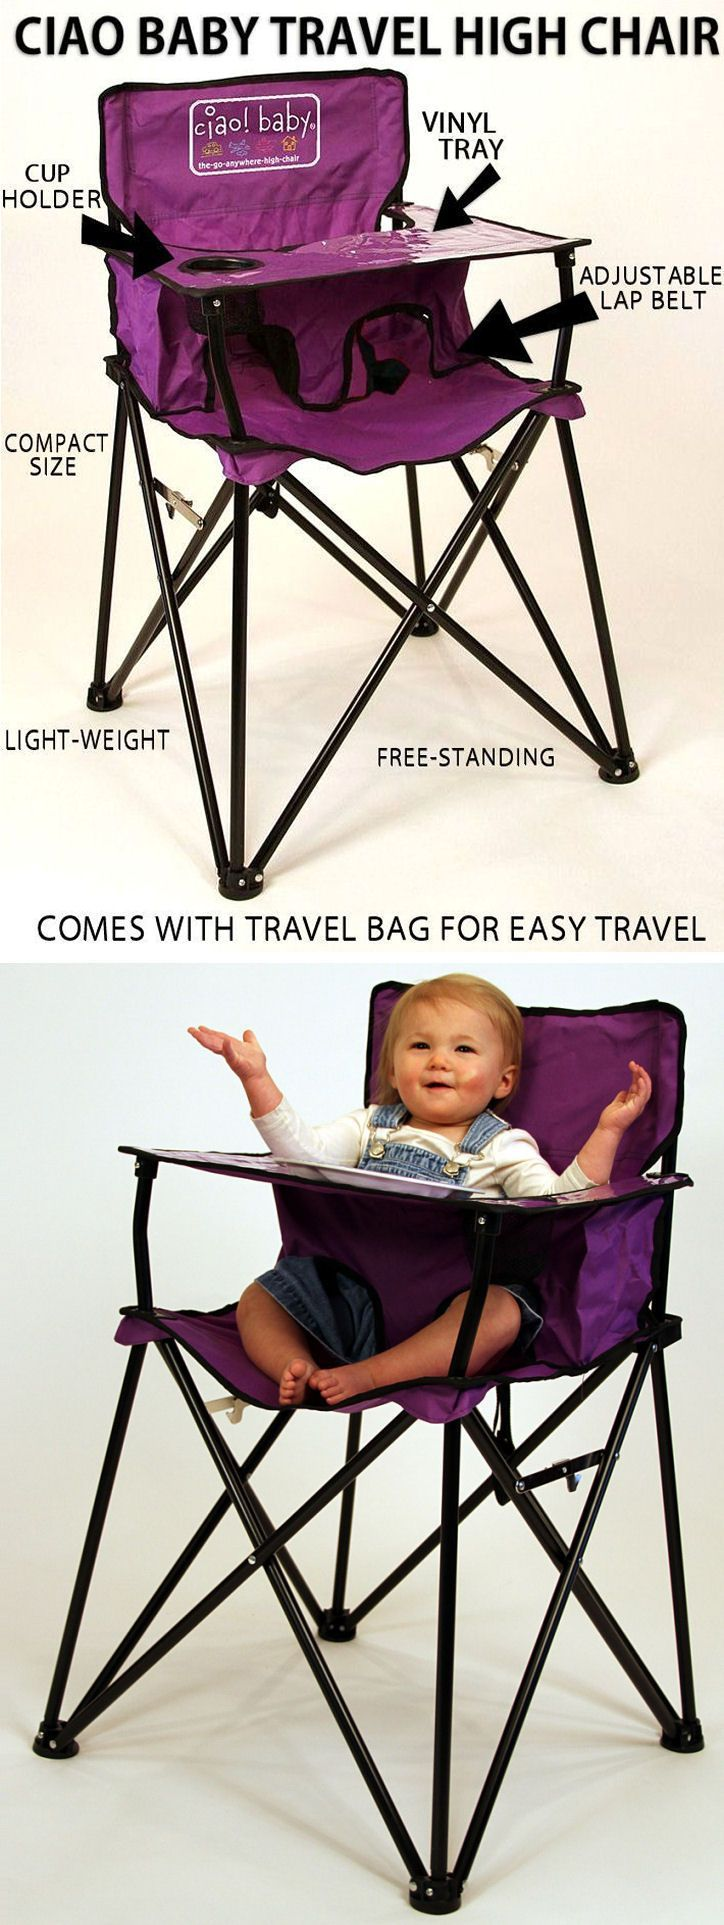 Baby chair for restaurant - Portable Baby High Chair Folds Up For Easy Travel Great For Park Camping